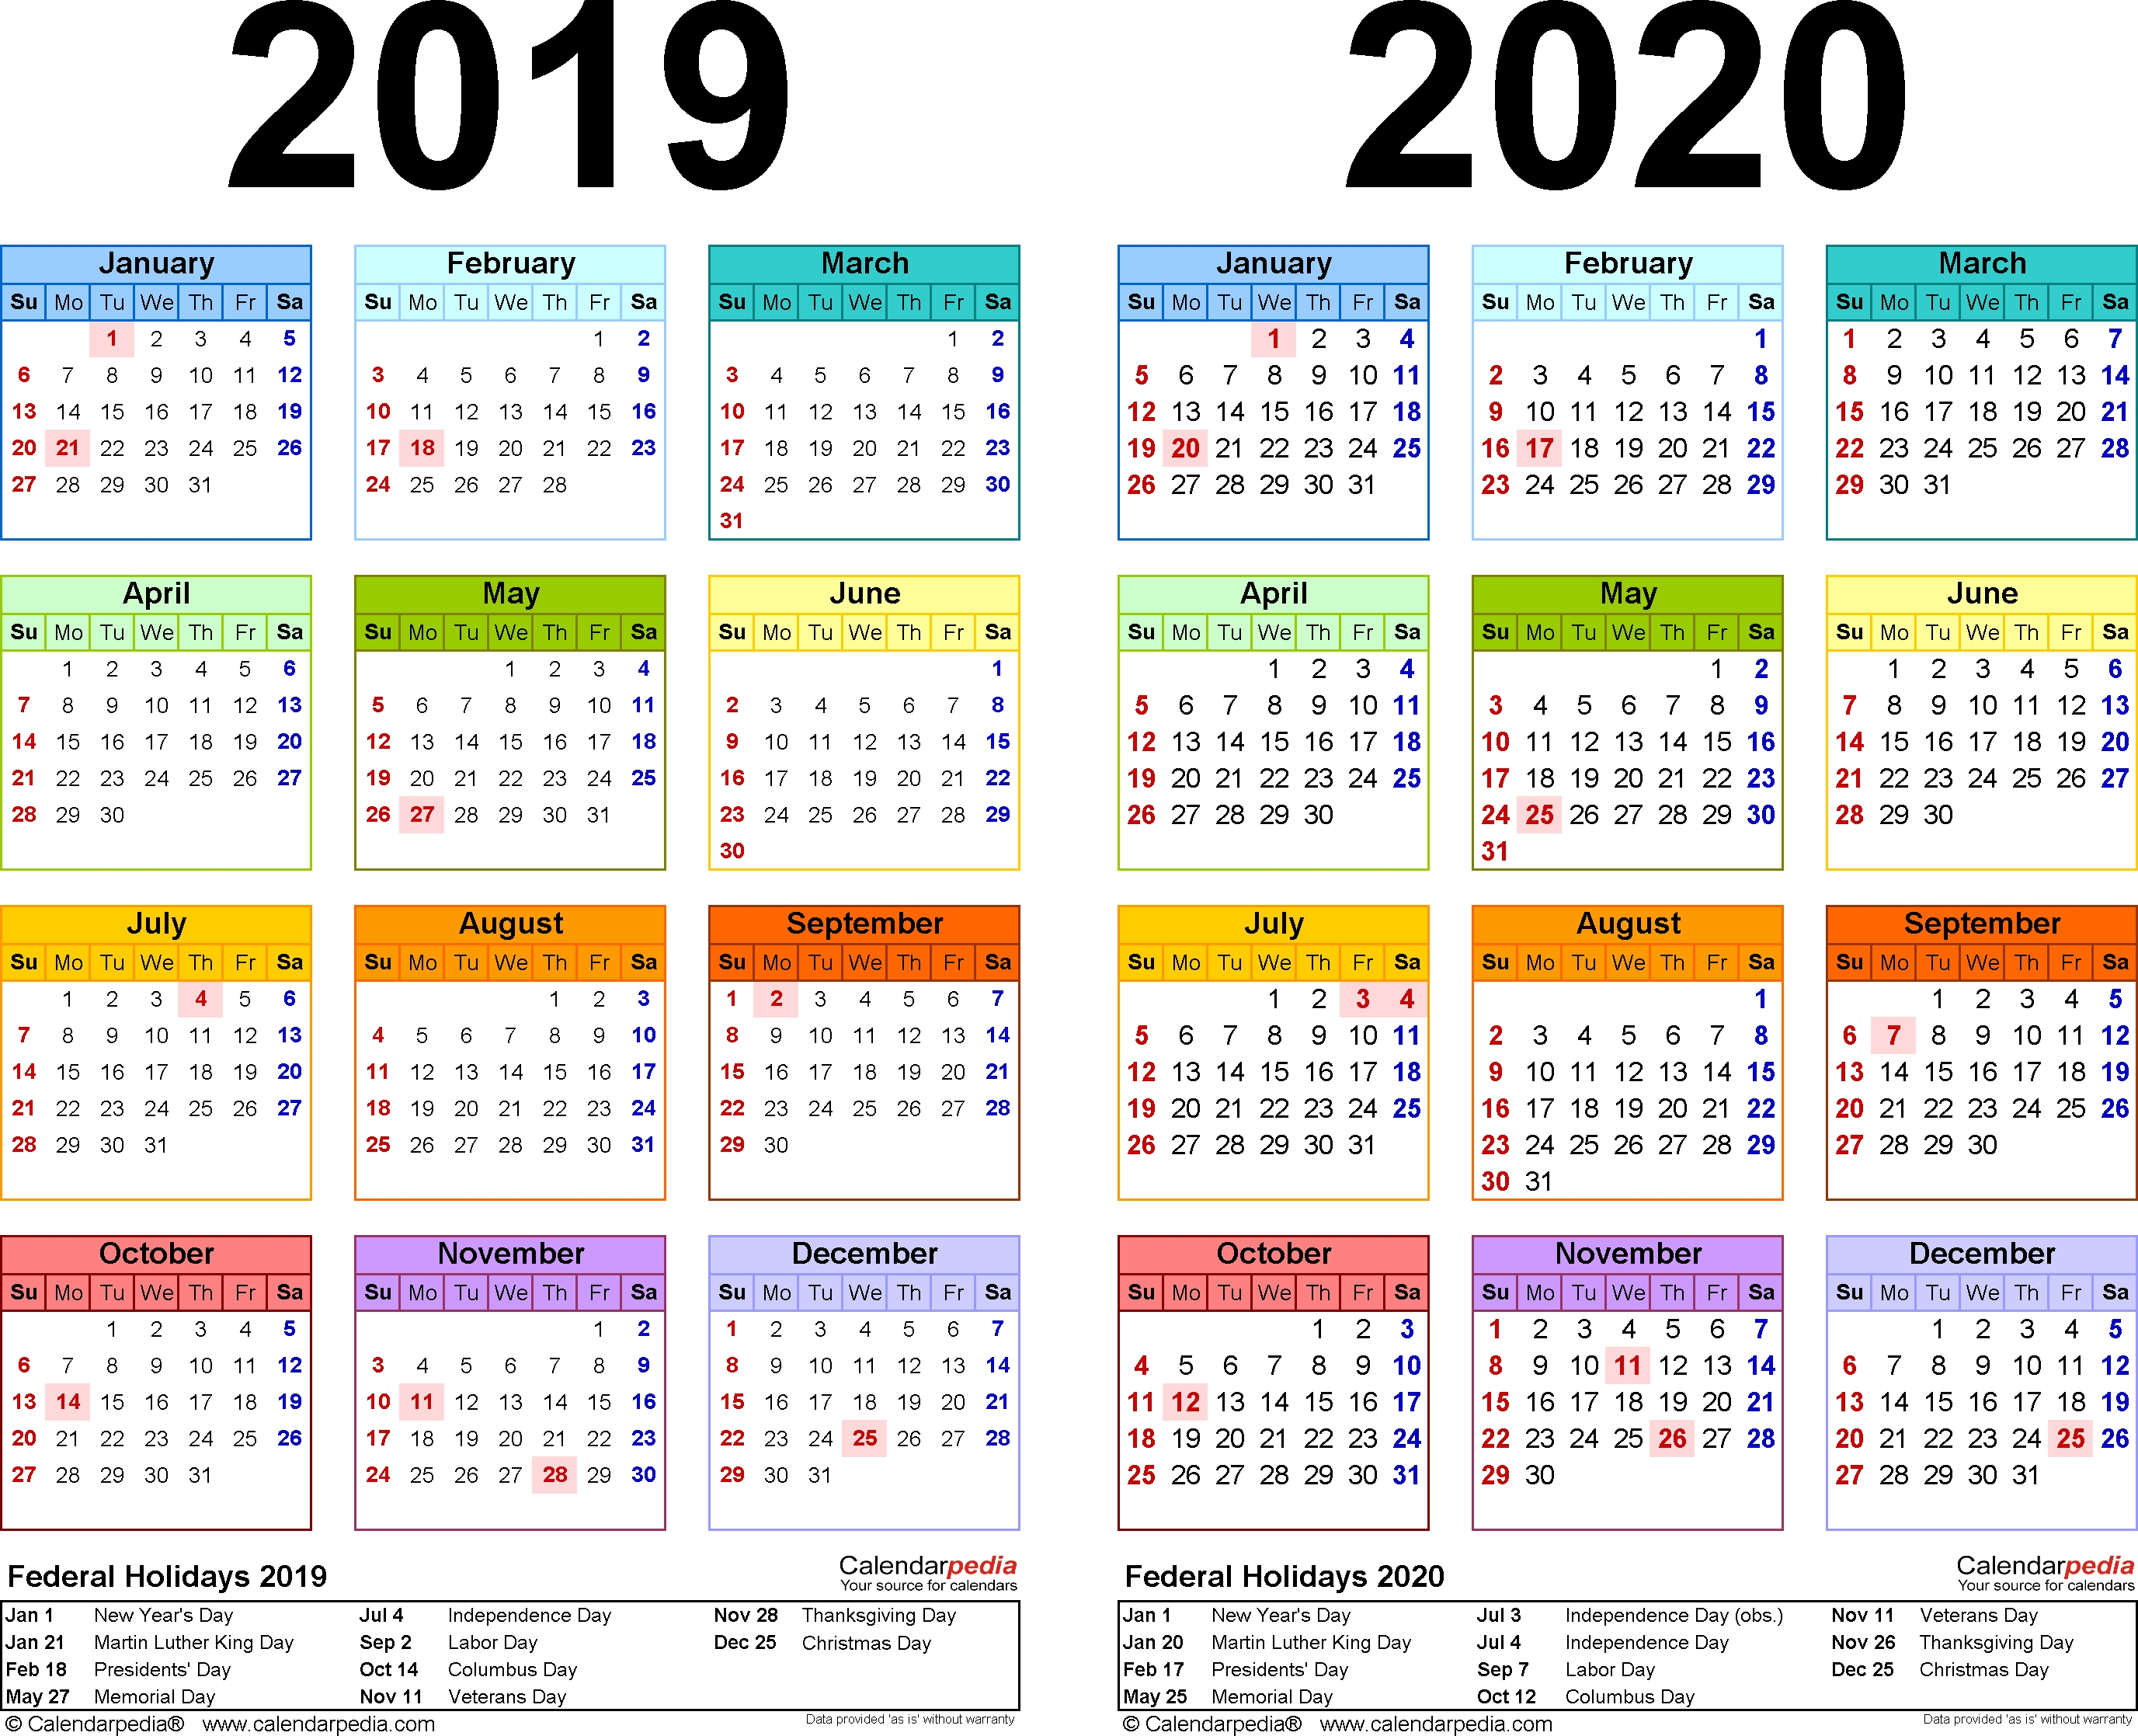 2019-2020 Calendar - Free Printable Two-Year Pdf Calendars inside Canadian Printable Academic Calendar 2019-2020